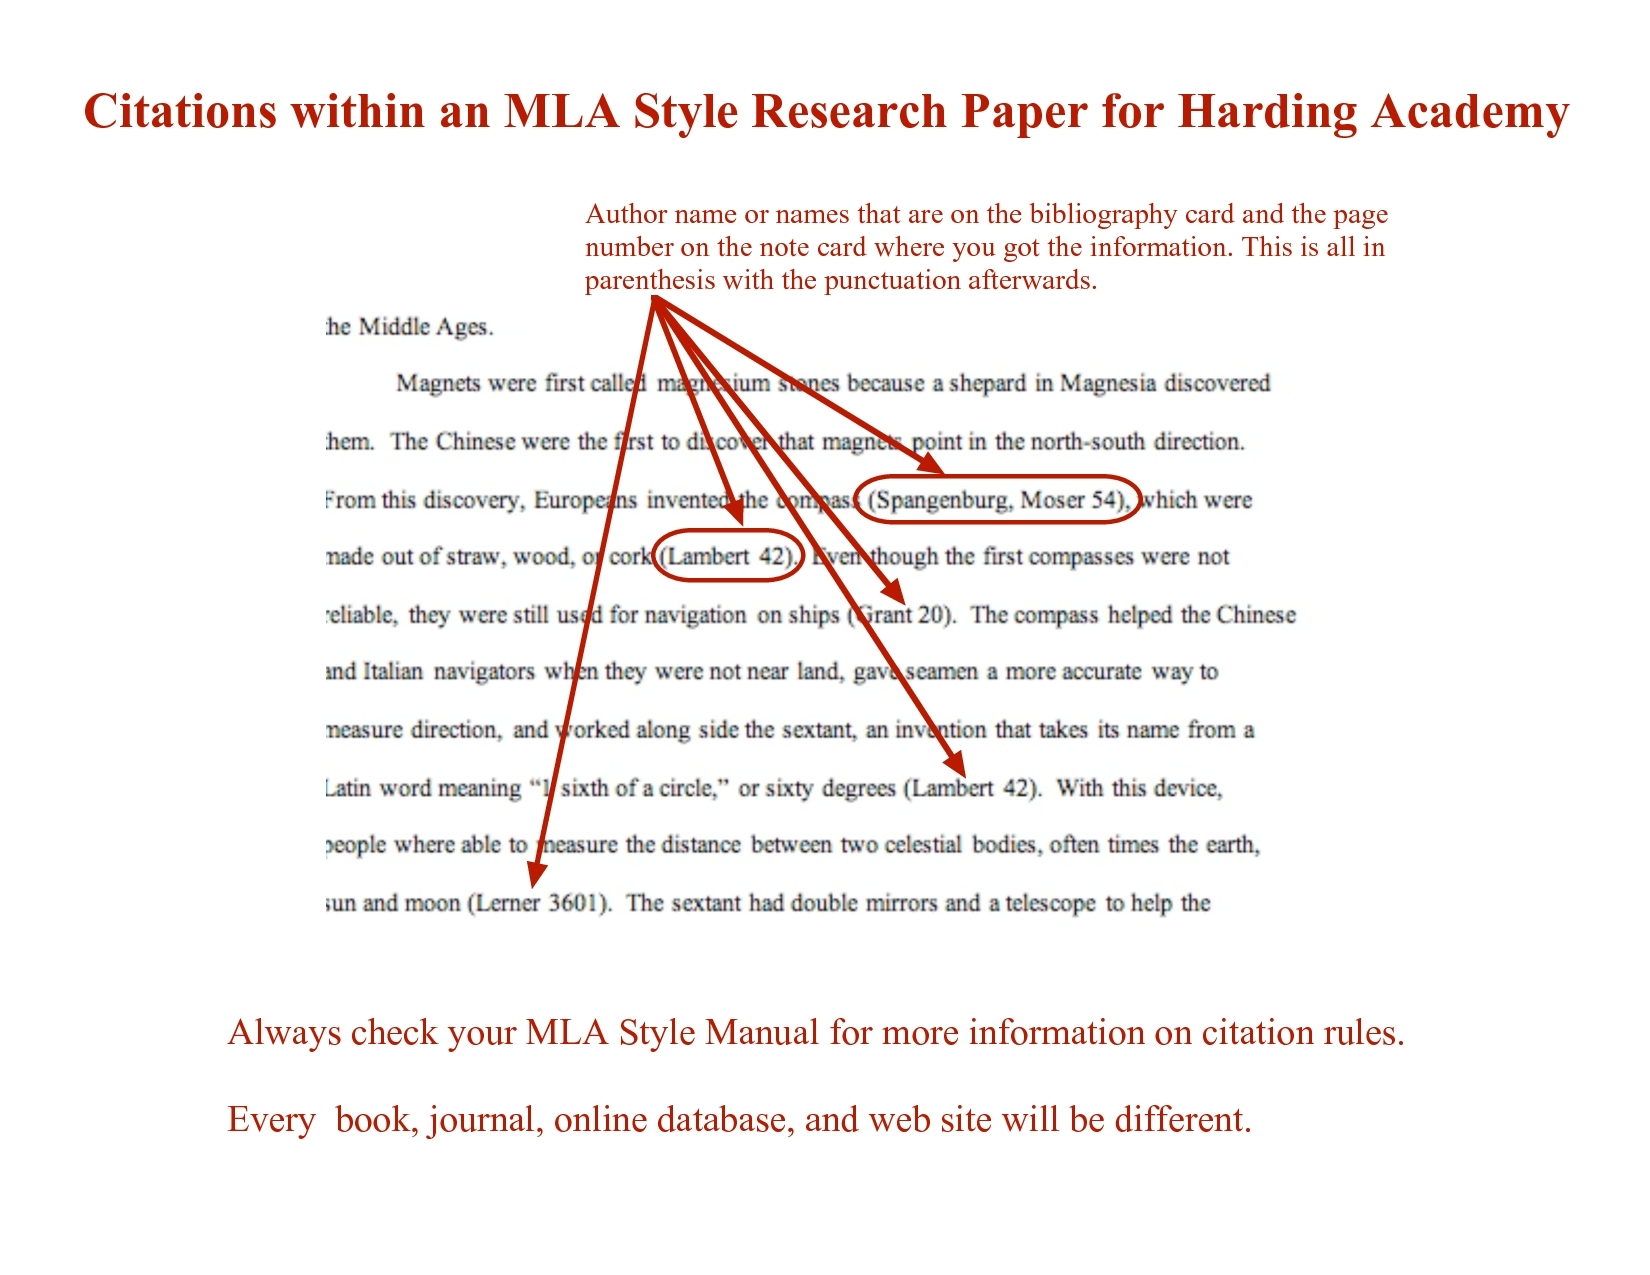 001 Ideas Of How To Cite Website Inr Mla With Additional Do You Citations Format For Research Citing Fearsome A Paper In Text Sample Full